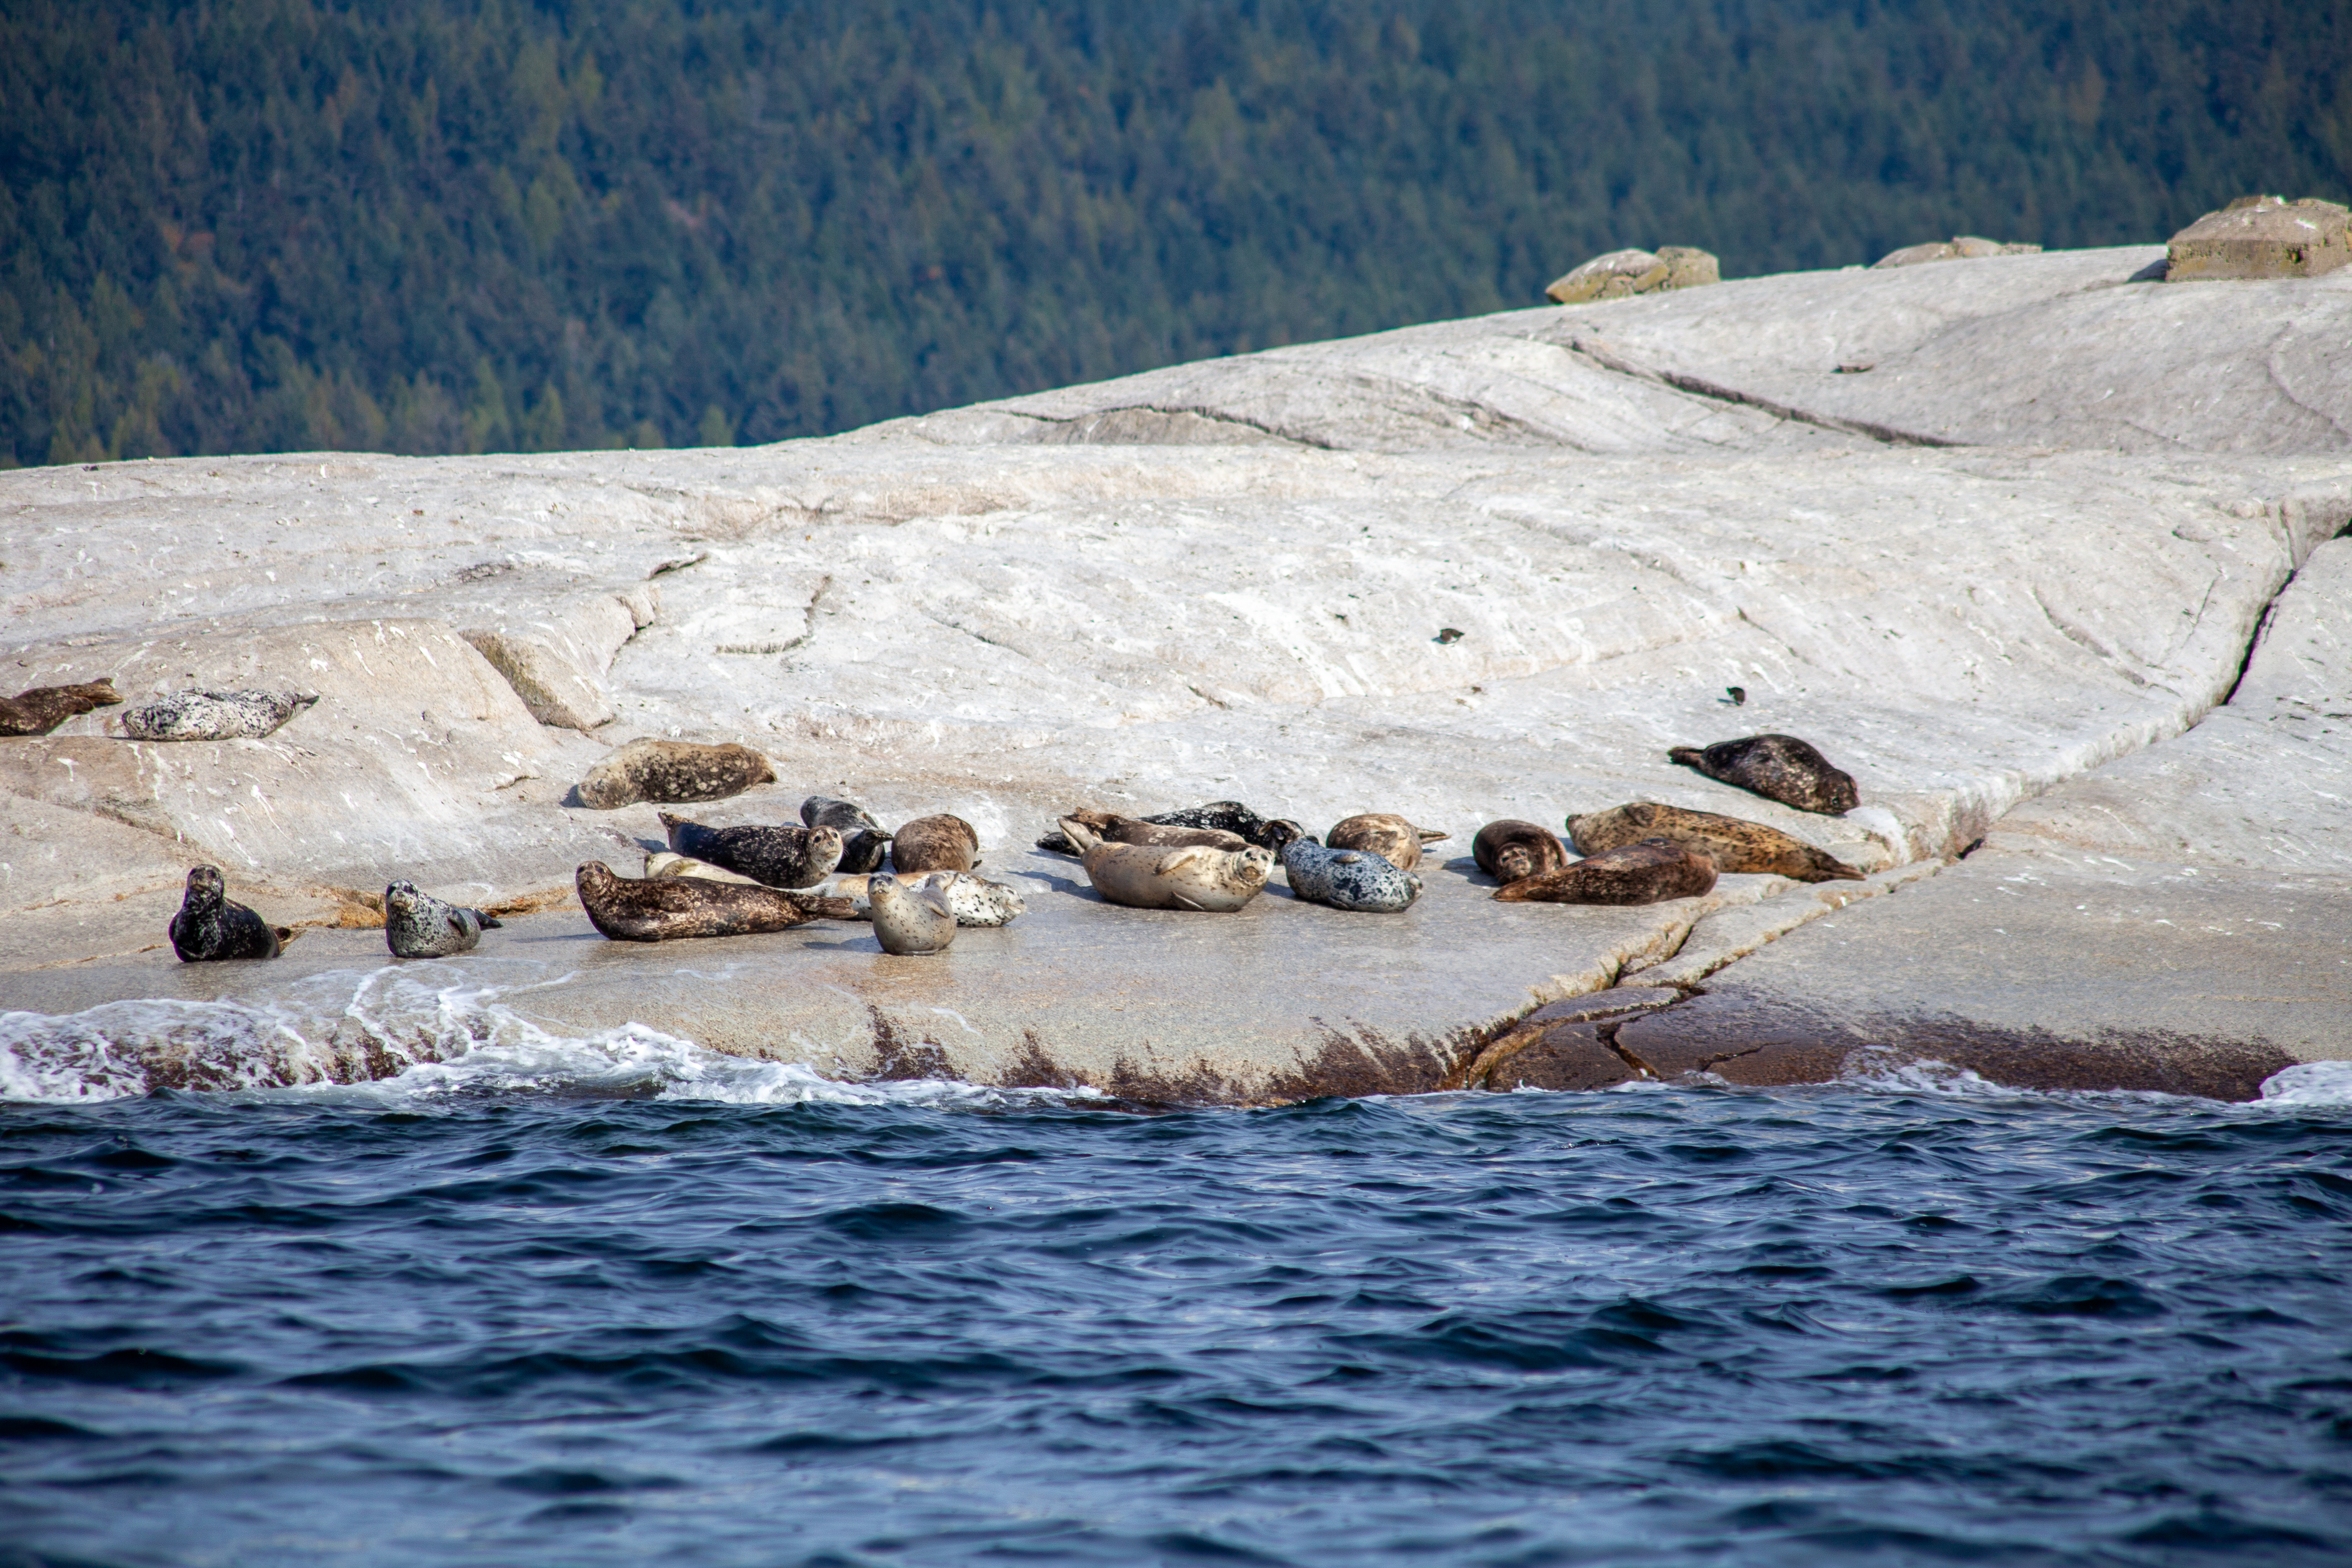 A group of British-Columbia Harbour Seals sun themselves on a haul out rock